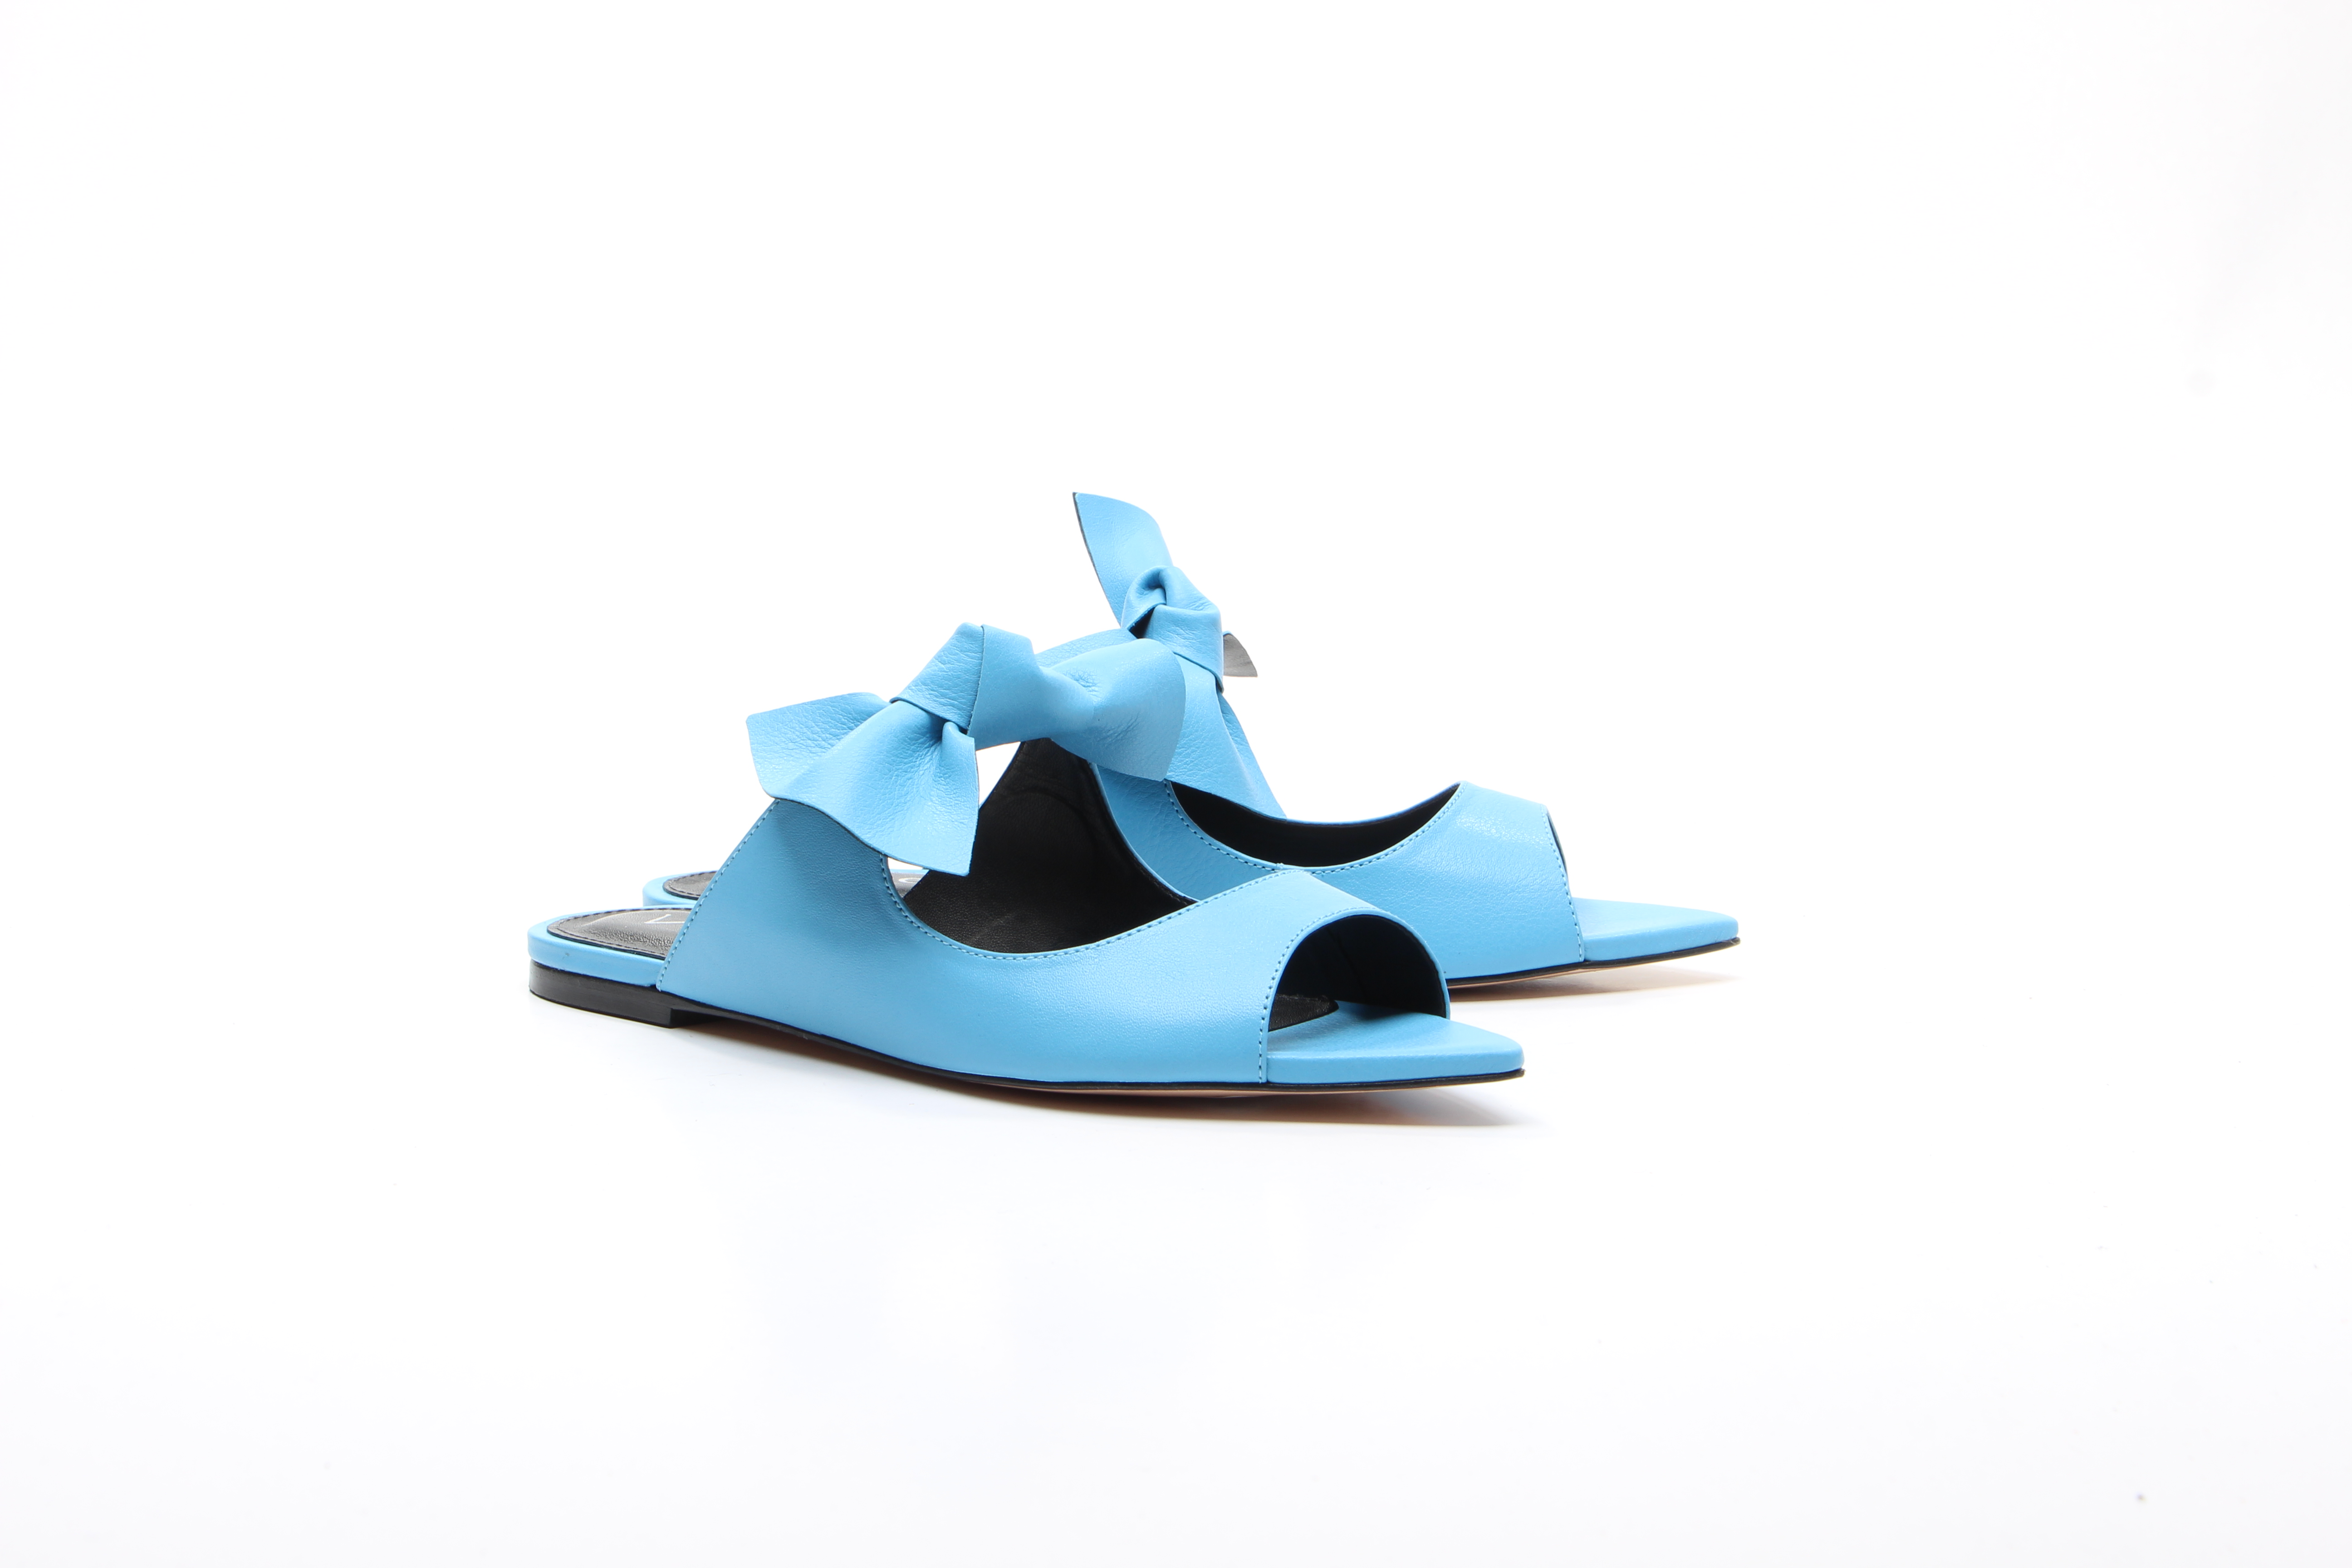 SANDALES NOEUD TURQUOISE VICENZA